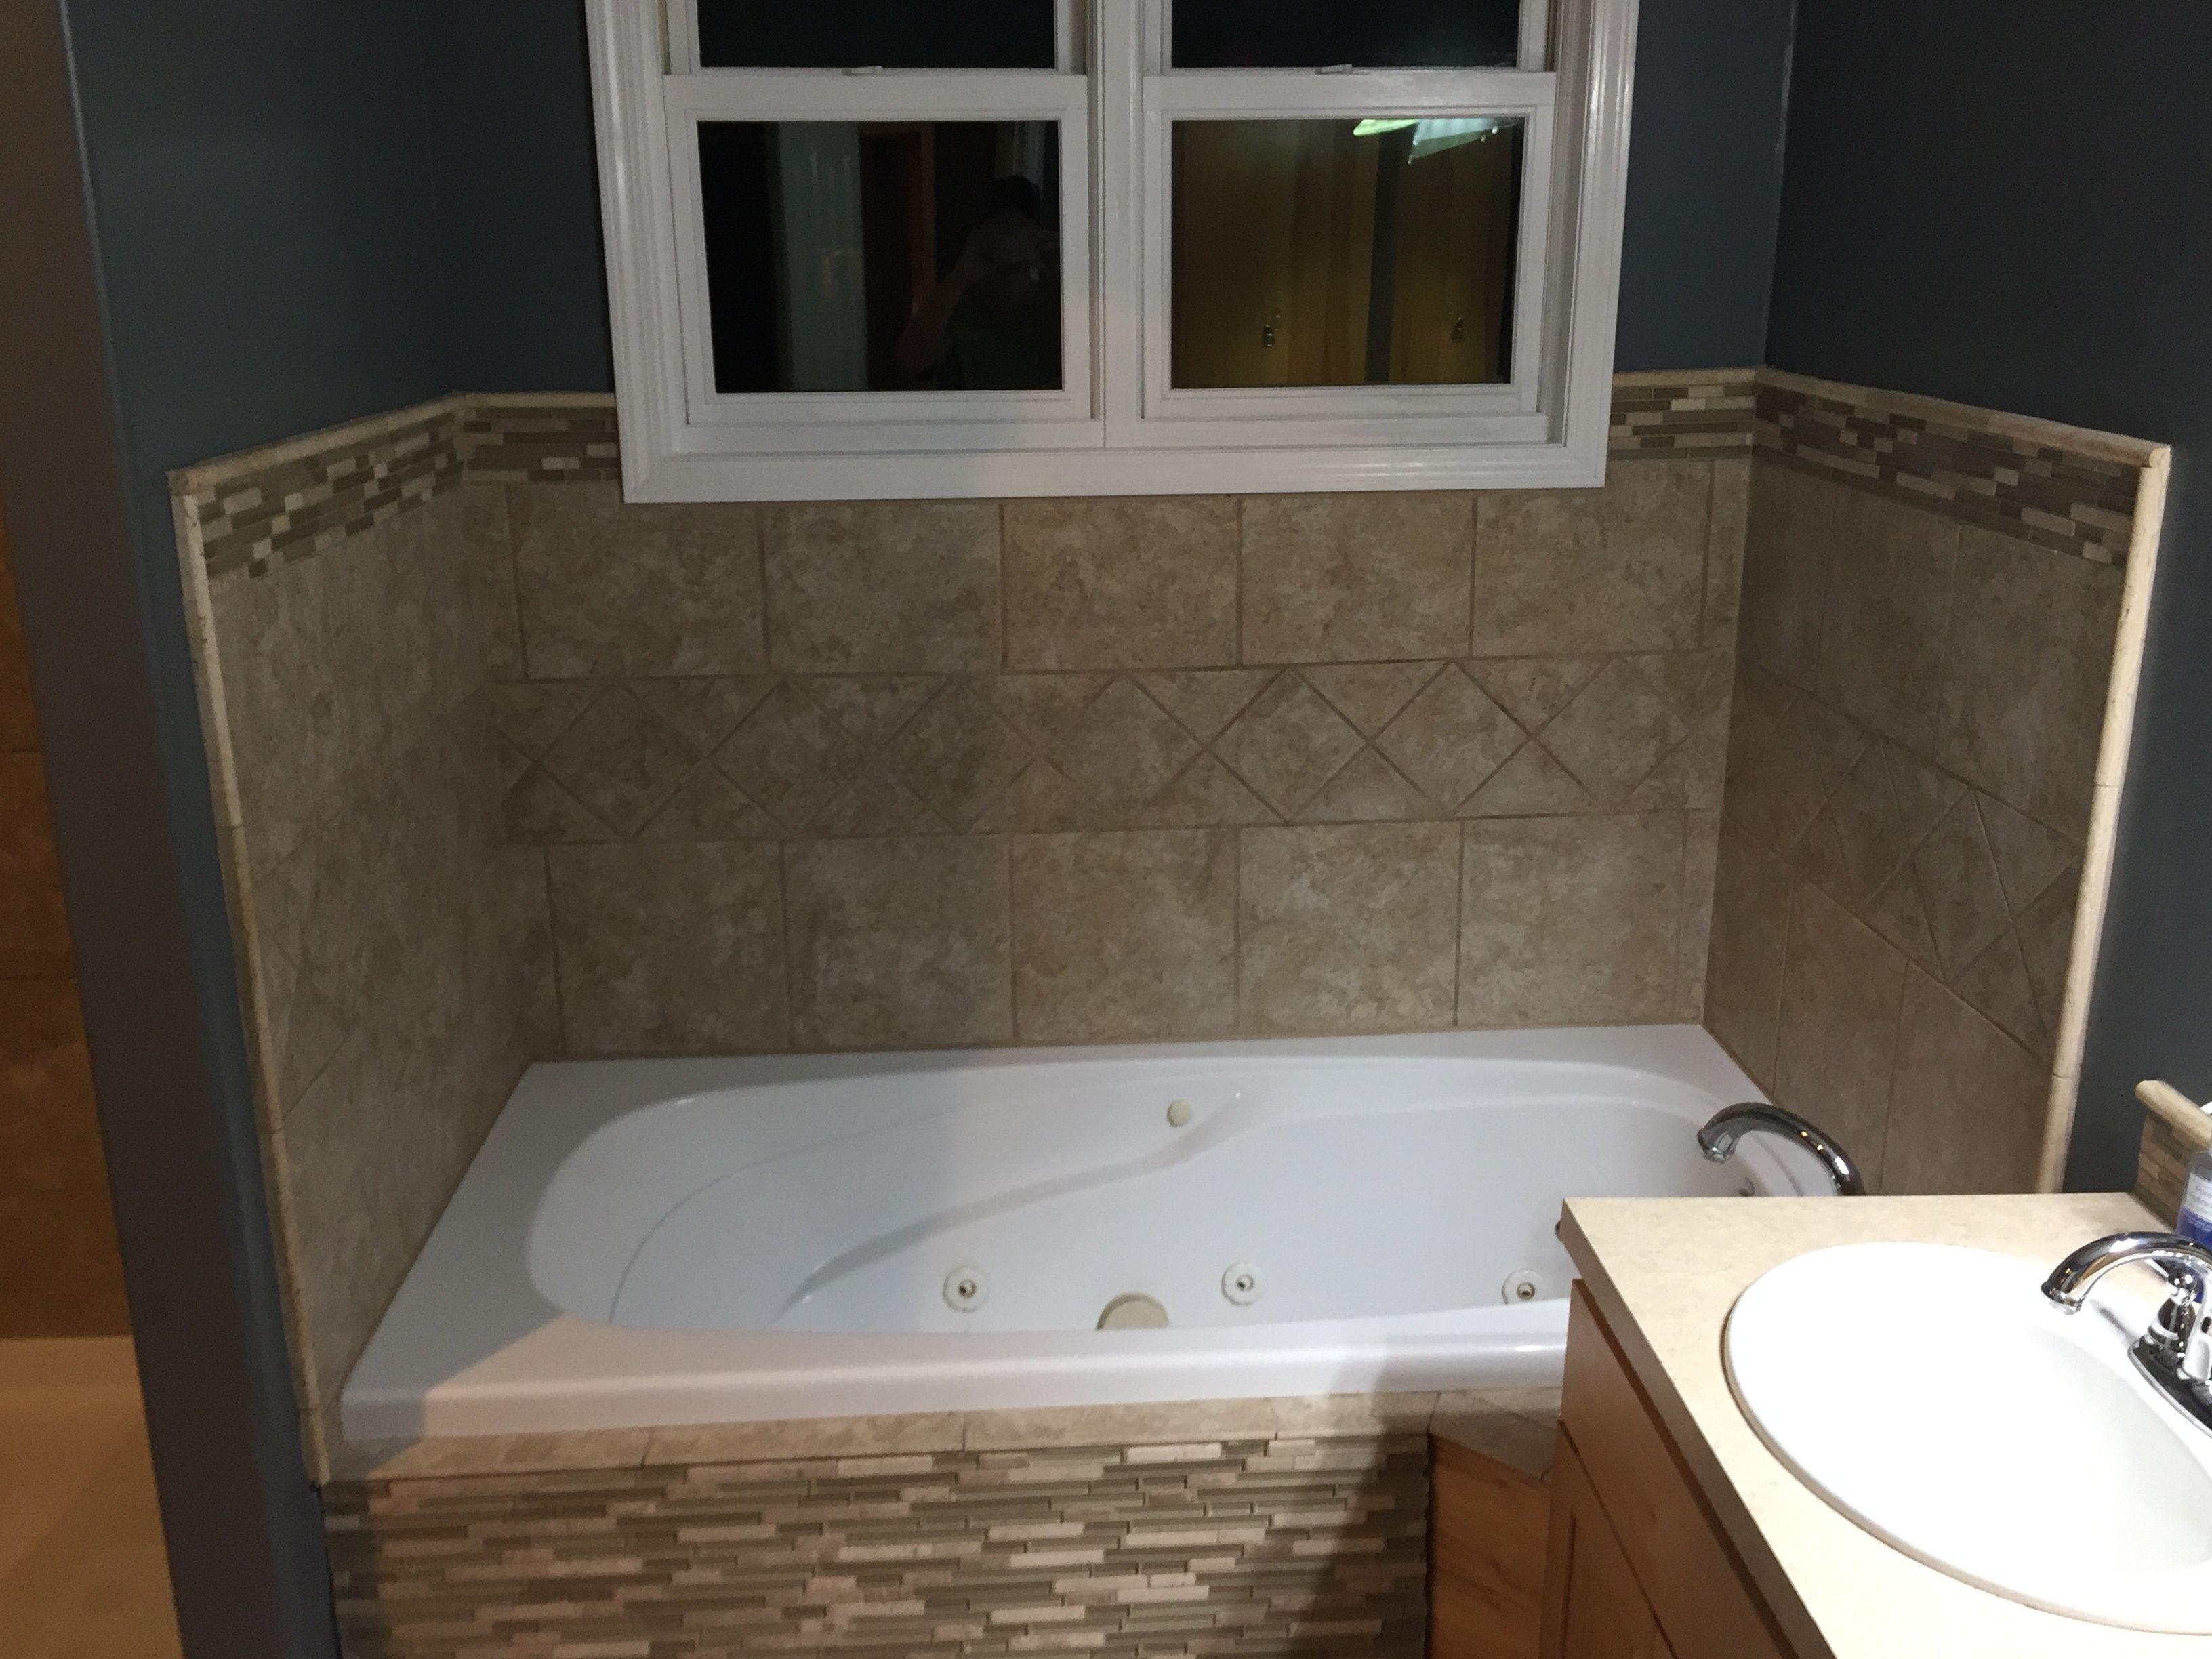 Tiled Tub Surround With A Glass Access Panel For This Foot Jetted - Bathroom remodeling contractors minneapolis